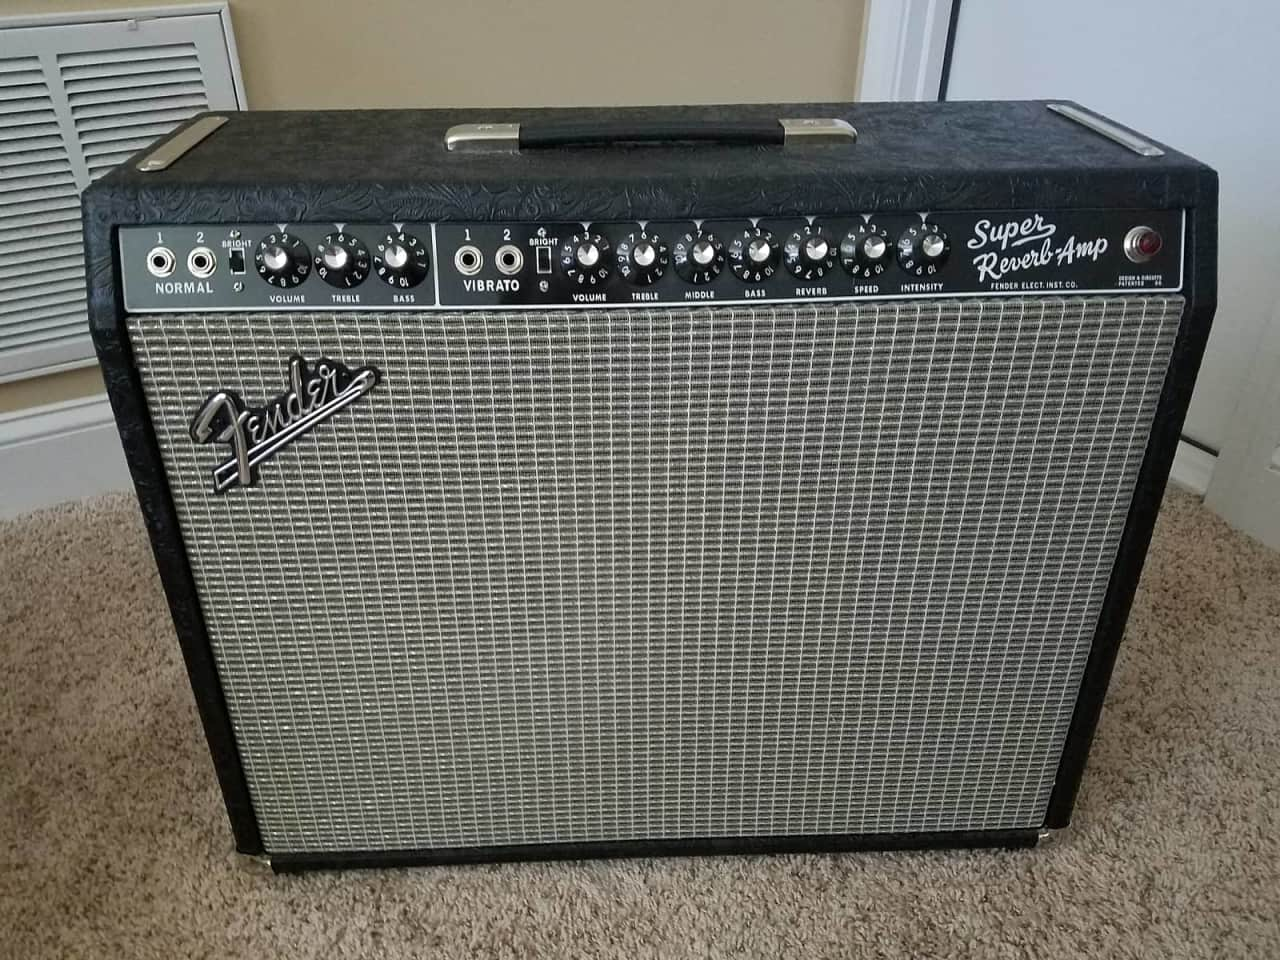 dating super reverb amp I have on the store bench, a silver face super reverb transformers, speakers, date '74 pots date '73 the amp it totally unmolested it's been.